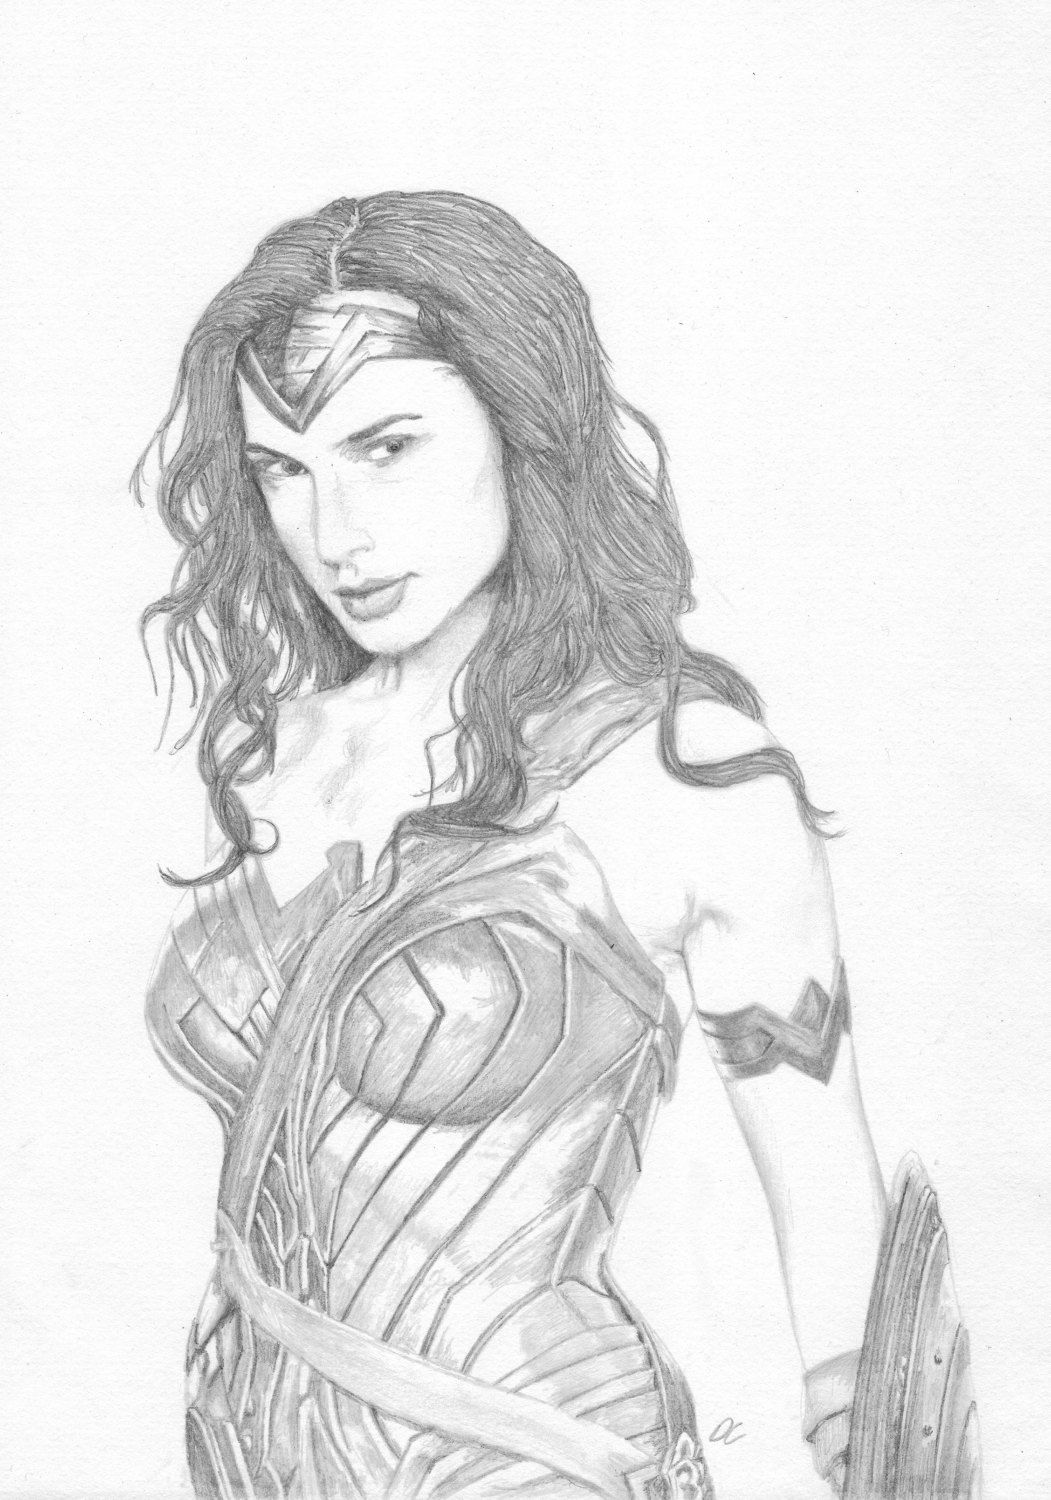 Wonder woman pencil drawing the justice league fan art print by iamdwaine on etsy